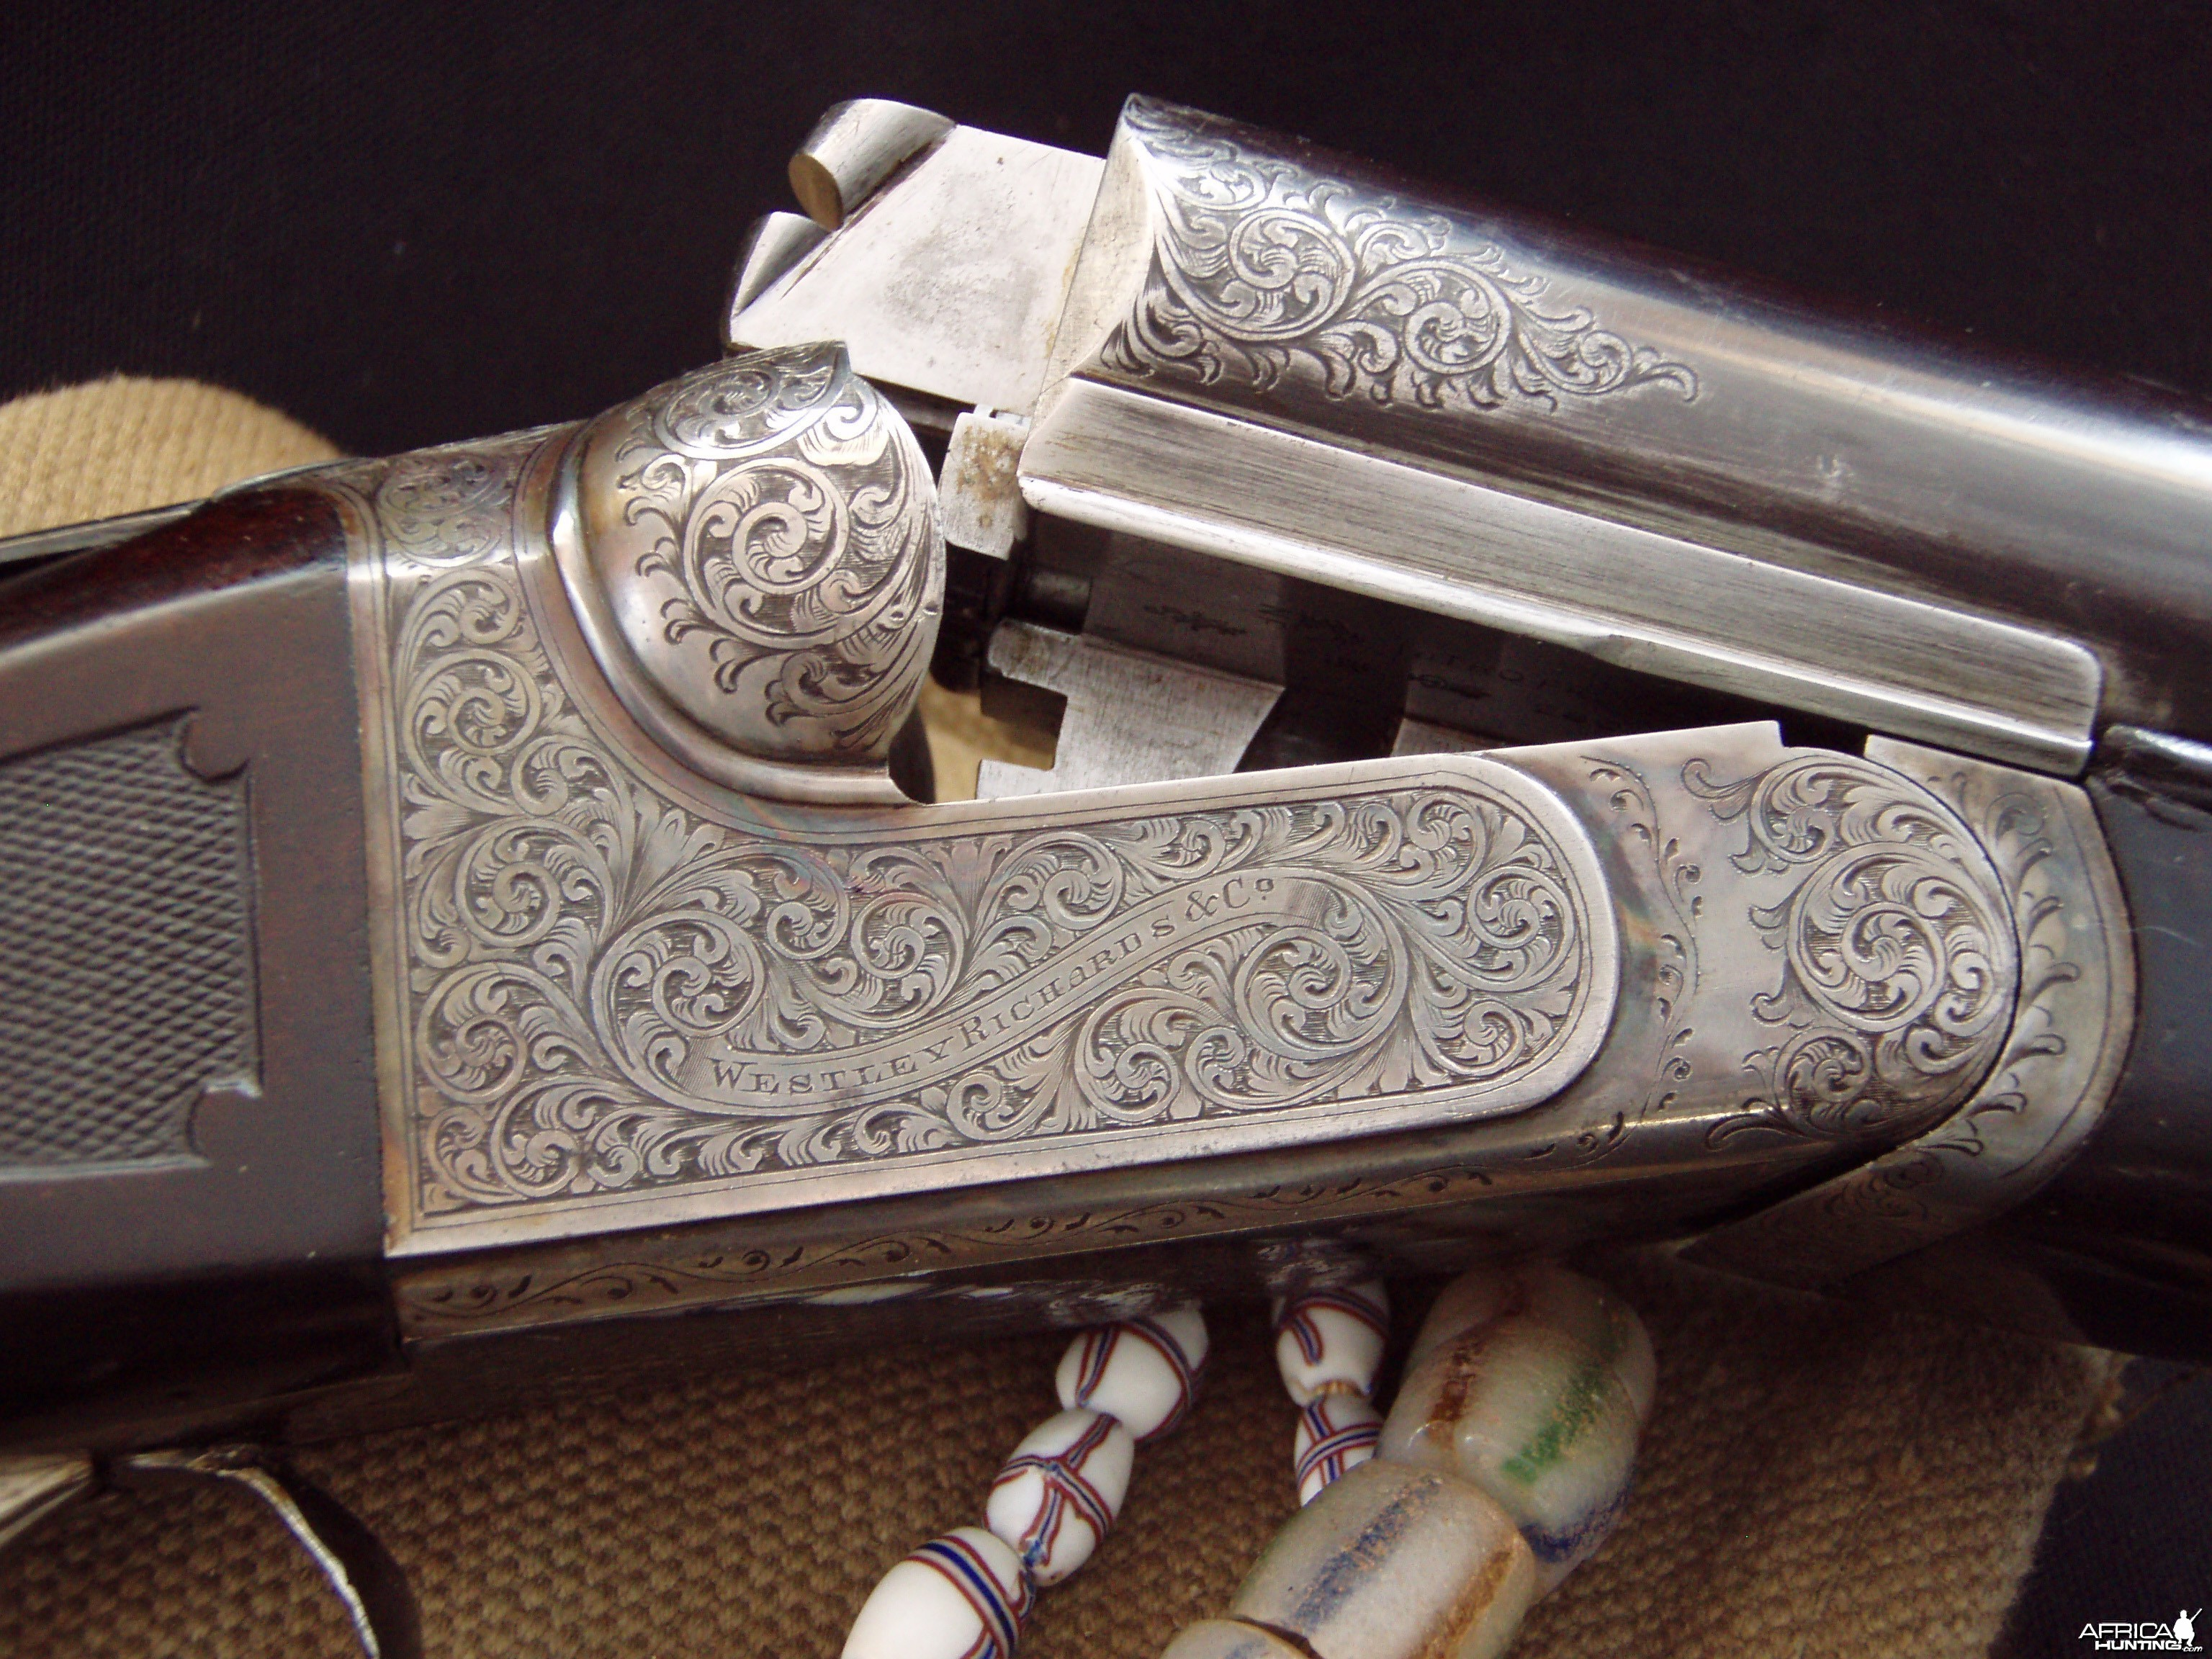 Westly Richards 280 Ross